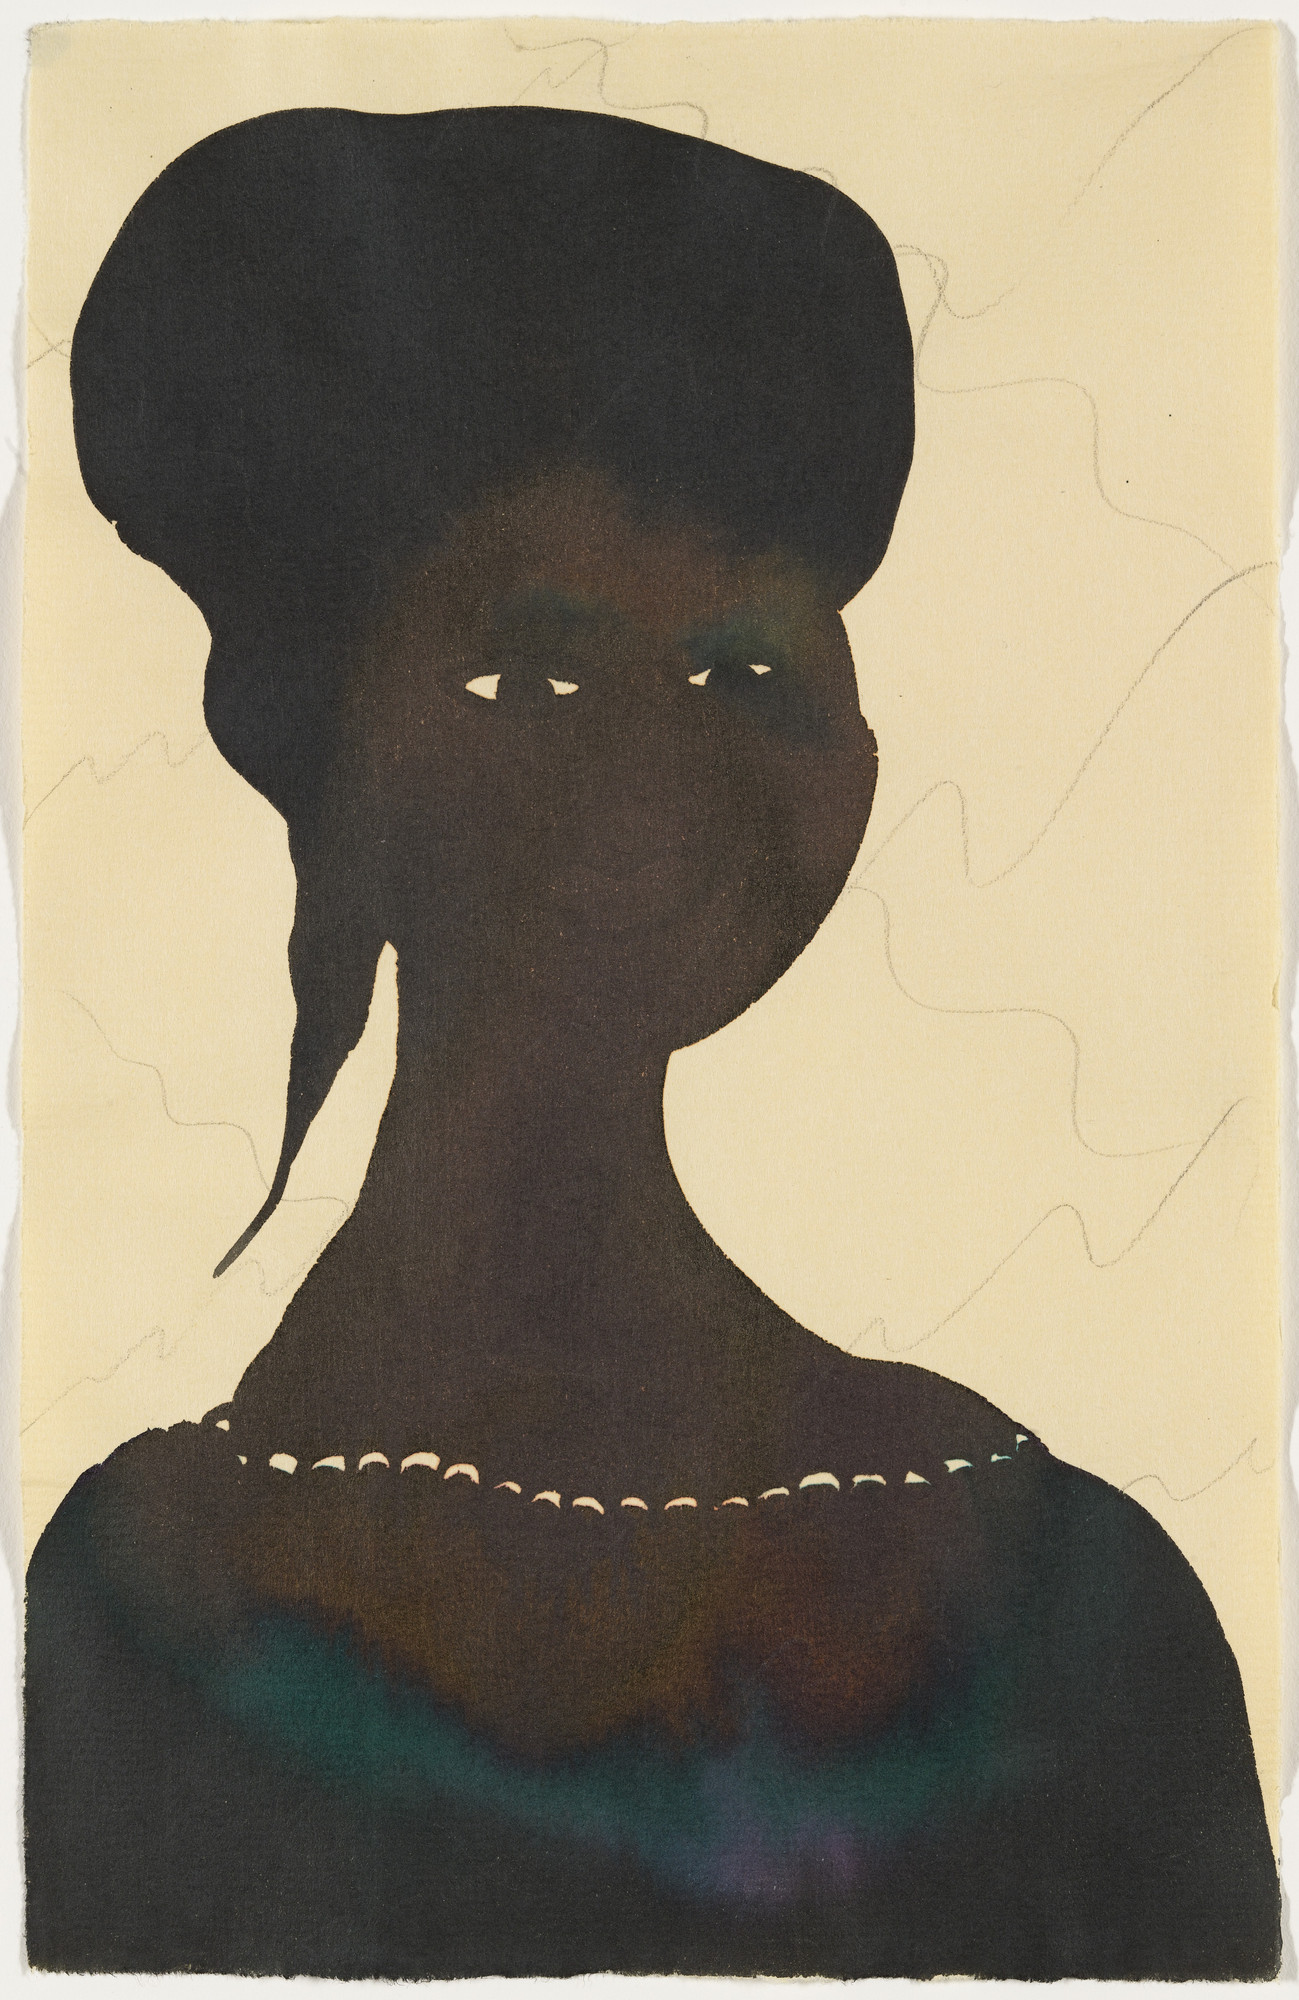 Chris Ofili. Untitled. 1998